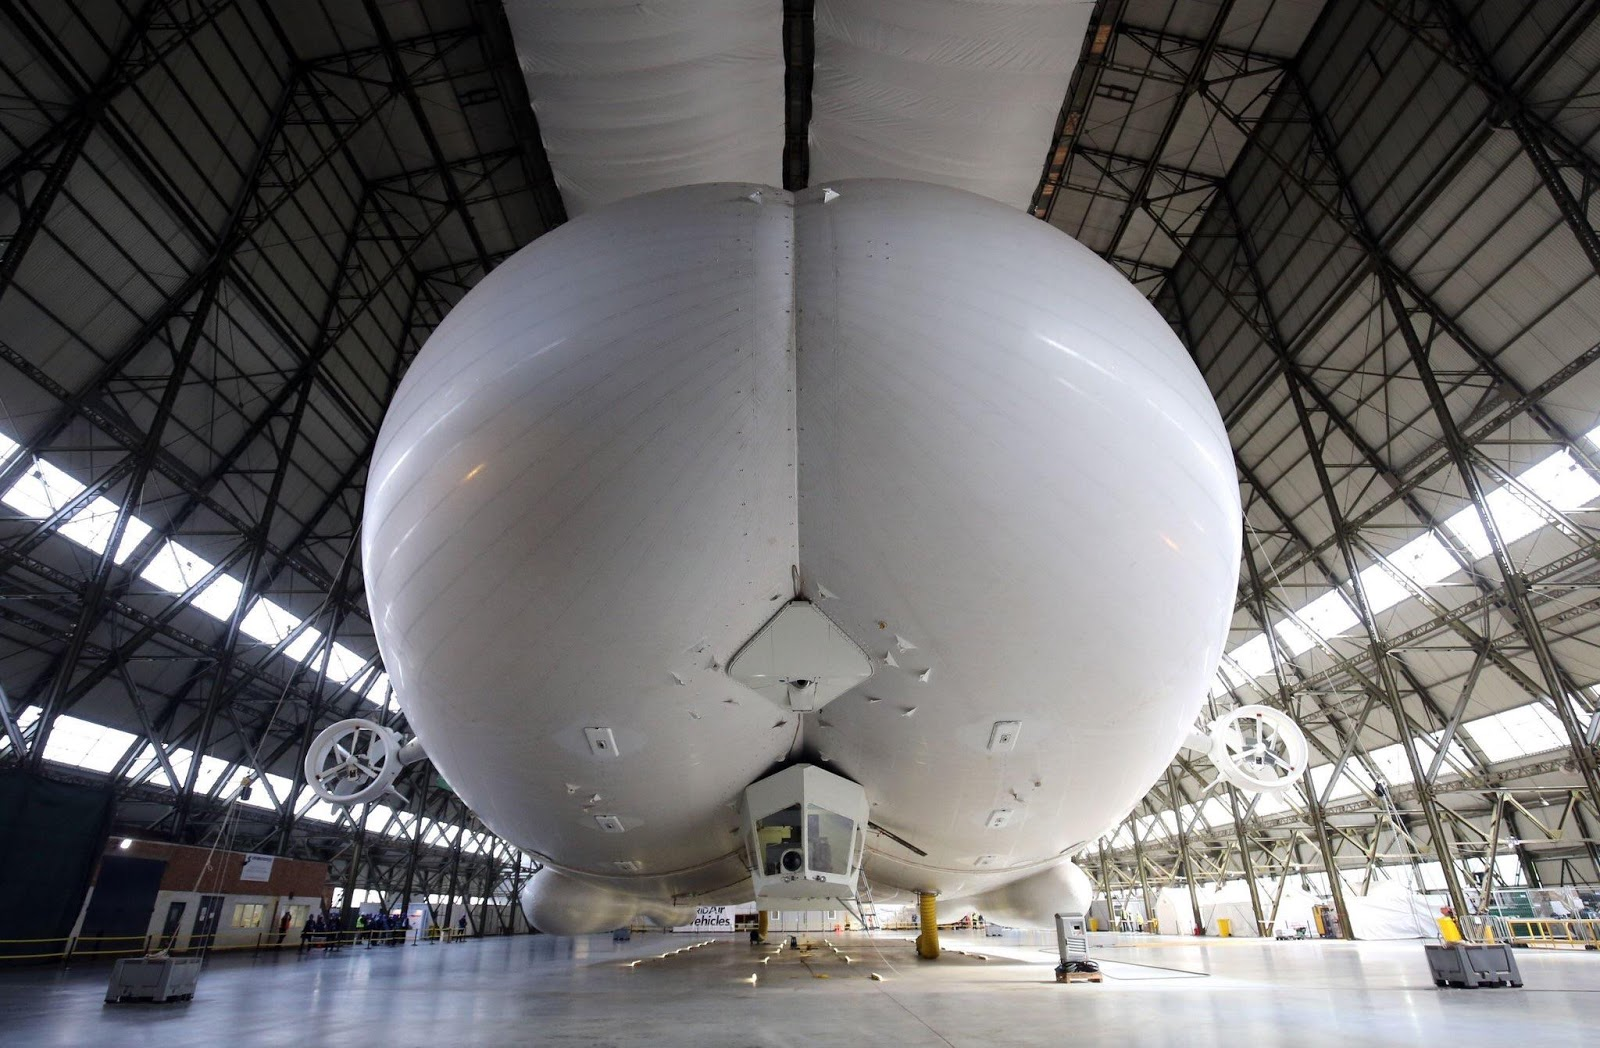 the world's longest aircraft, the world's largest aircraft, the world's largest aircraft carrier, the longest aircraft carrier, the longest aircraft in the world, the world's largest paper airplane, the world's longest aircraft, which country unveiled the world's longest, aircraft airlander hav 302.